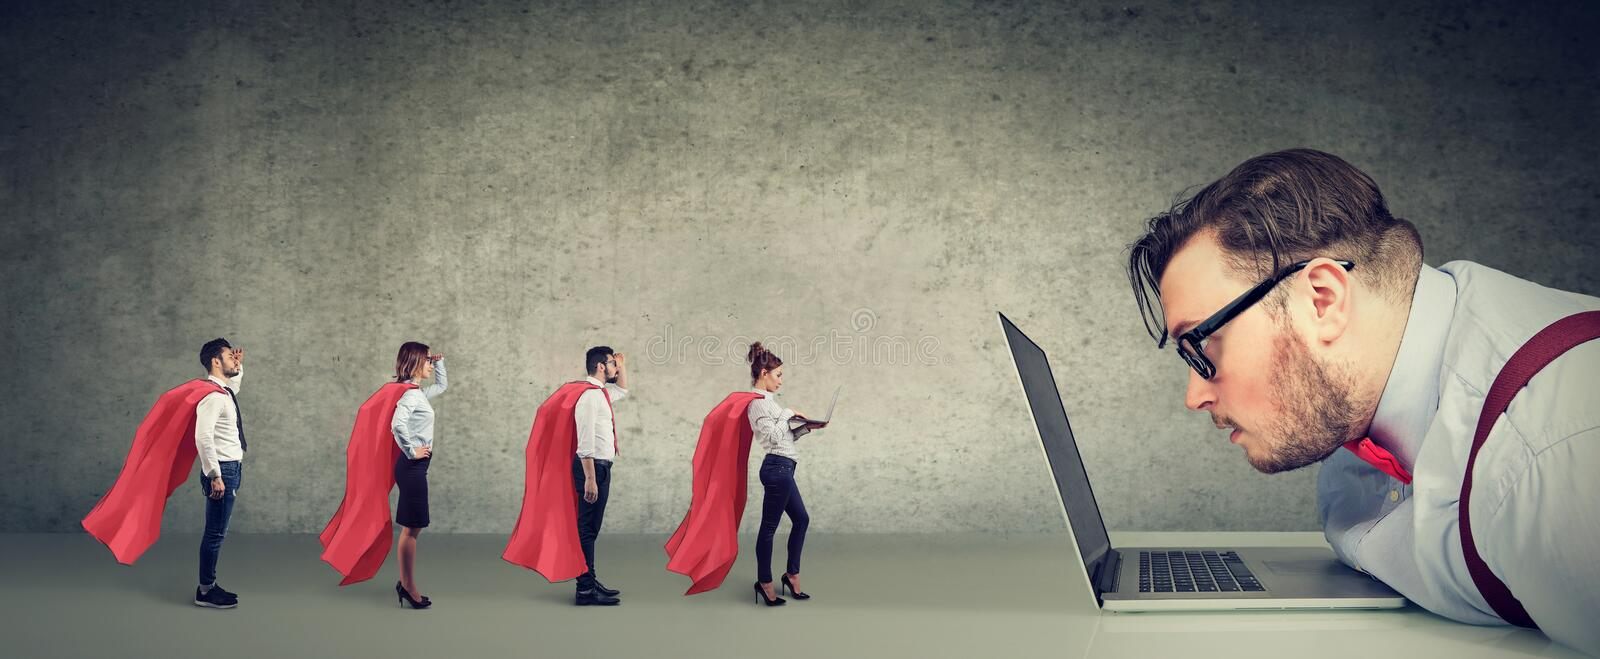 Stressed business man being helped online by professional team of super hero people royalty free stock image